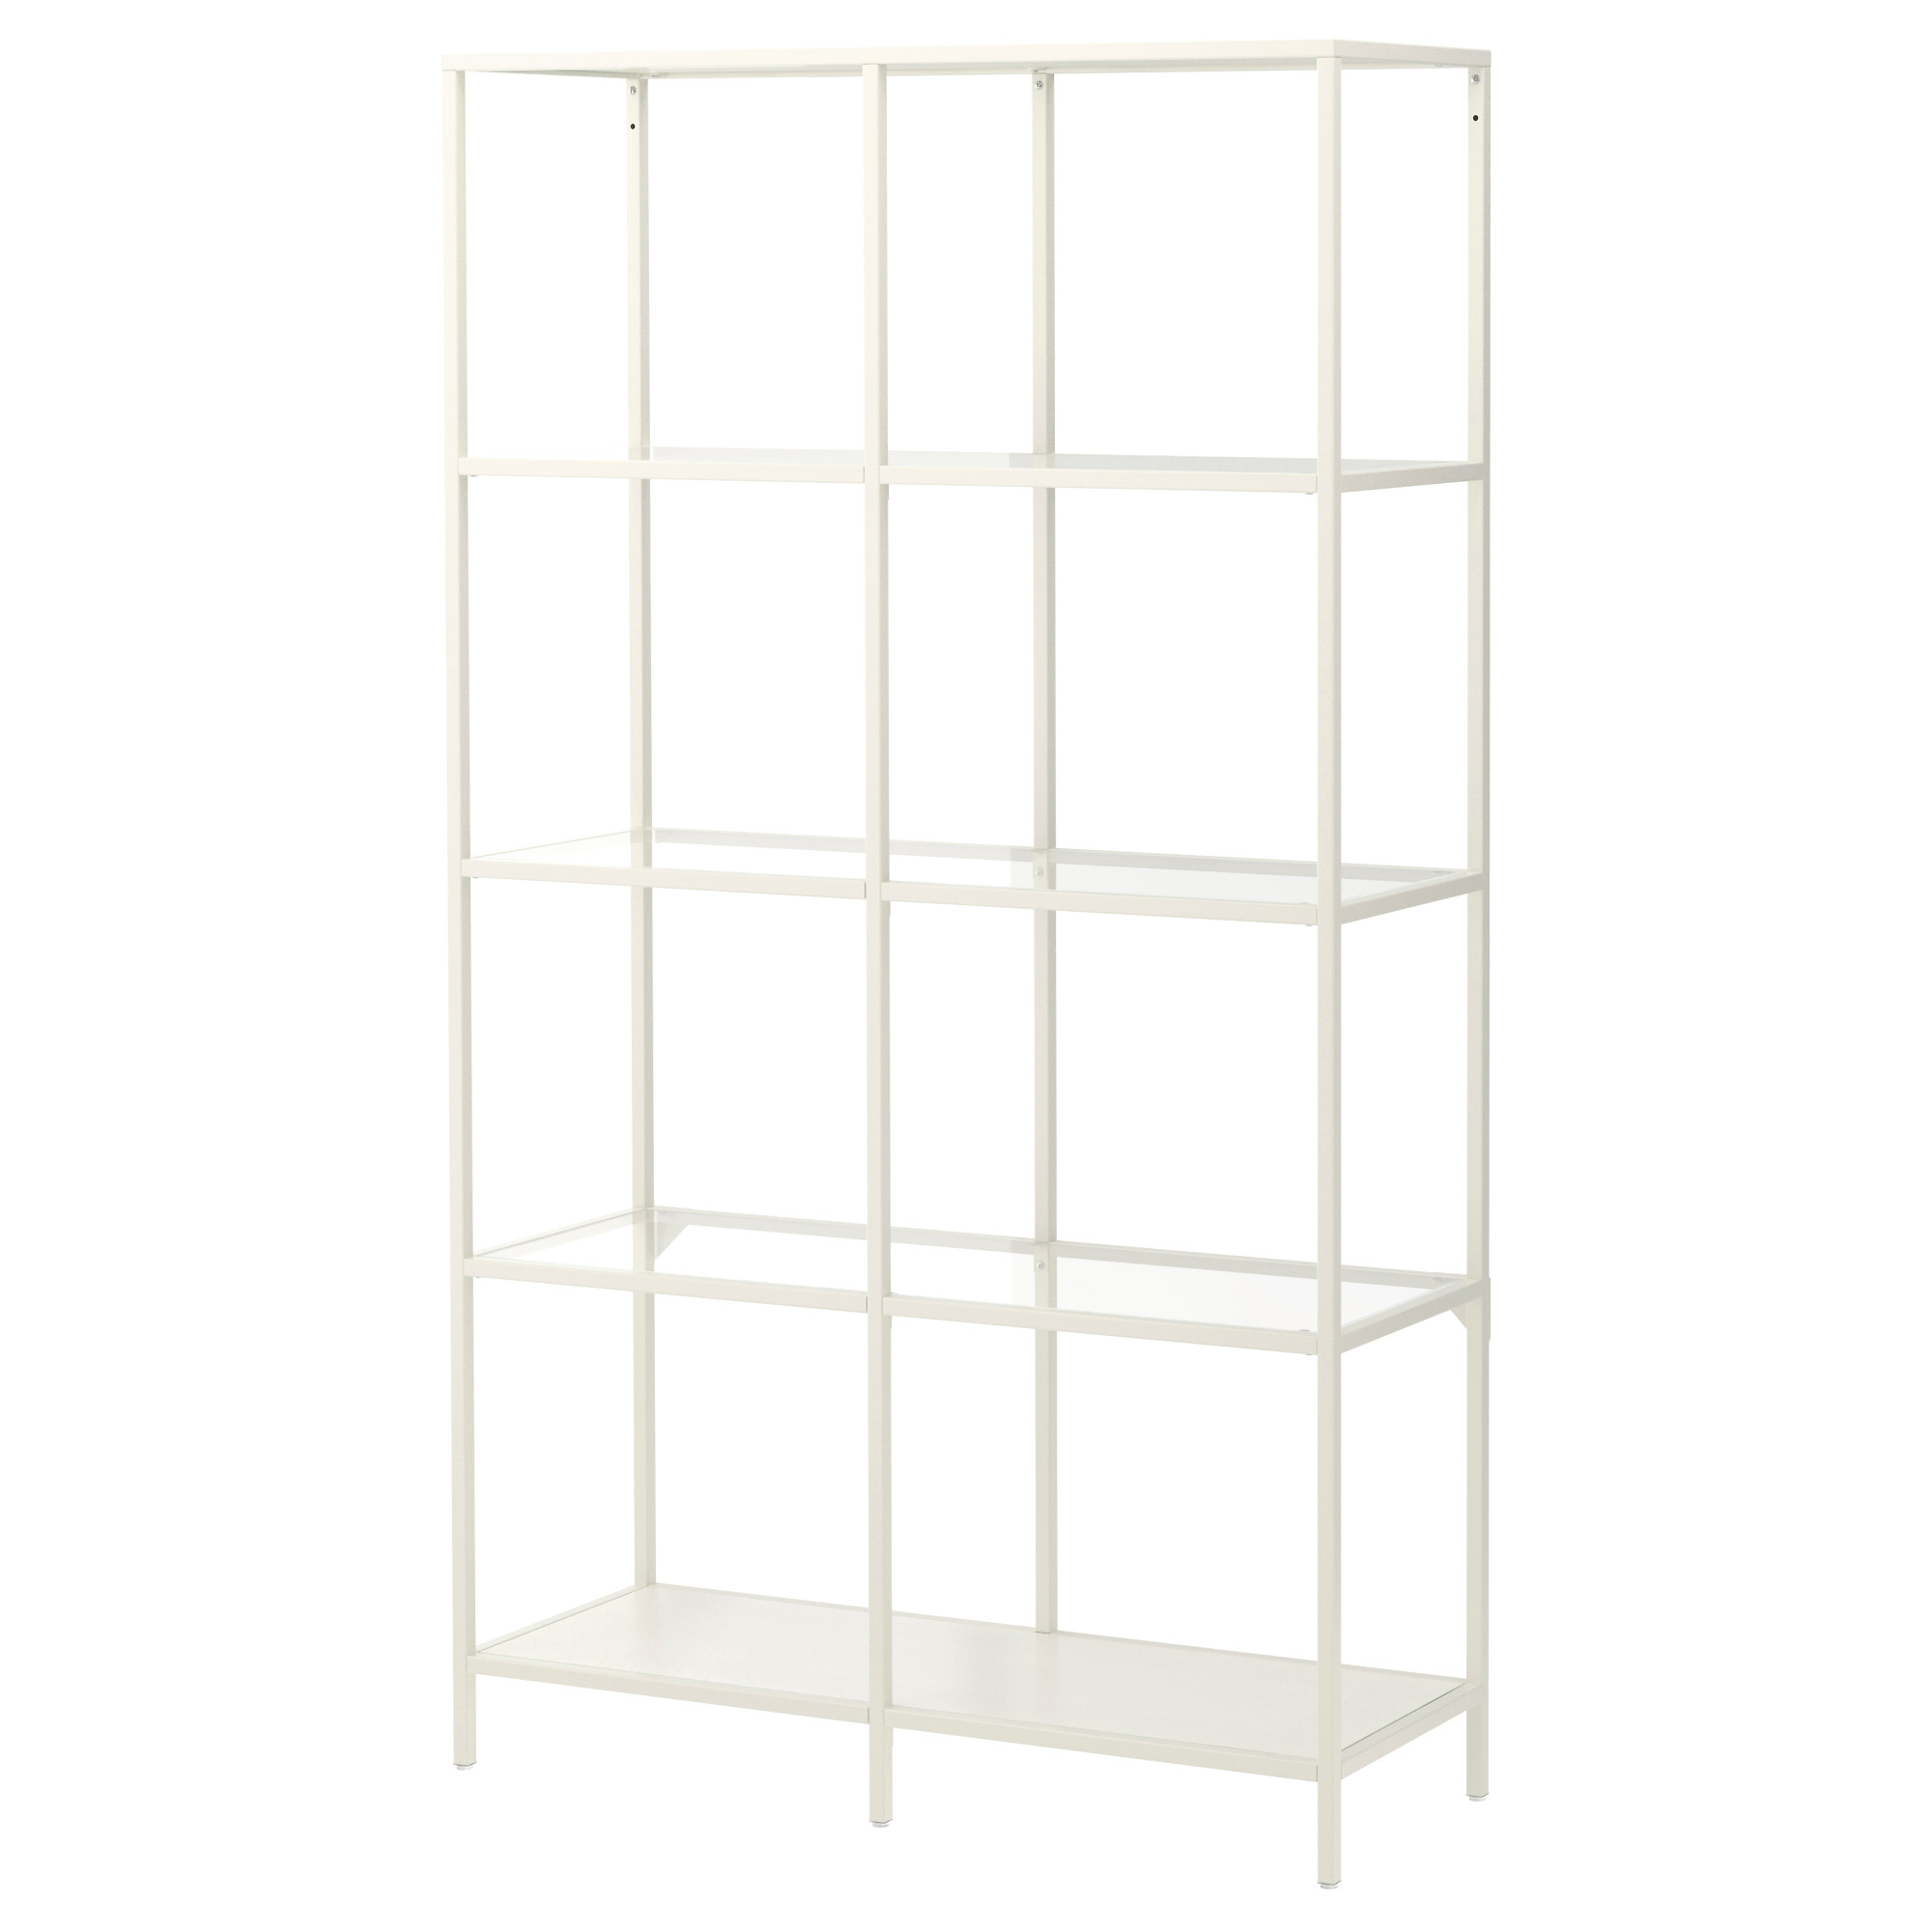 Chic VITTSJÖ Shelf unit - black-brown/glass - IKEA glass shelving unit